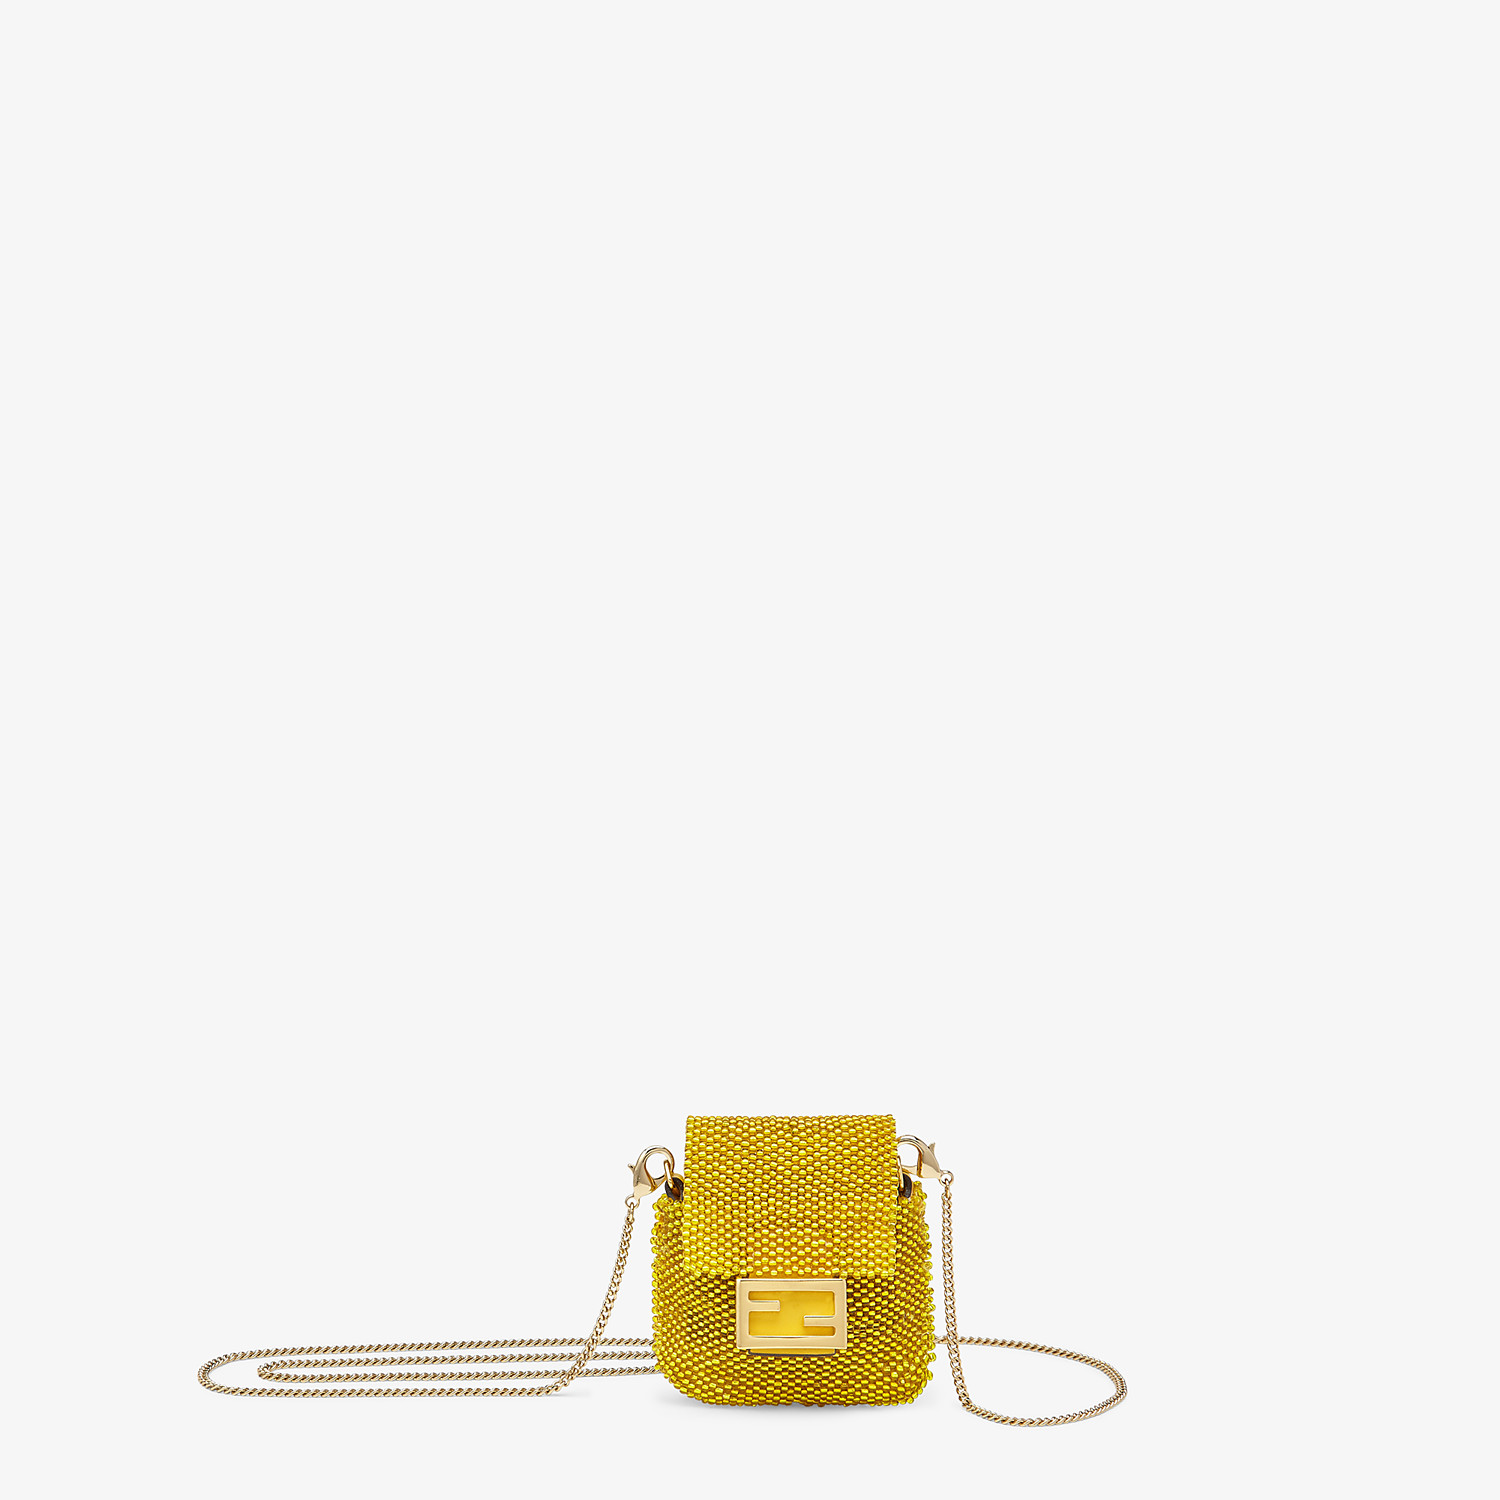 FENDI PICO BAGUETTE CHARM - Charm with yellow beads - view 1 detail